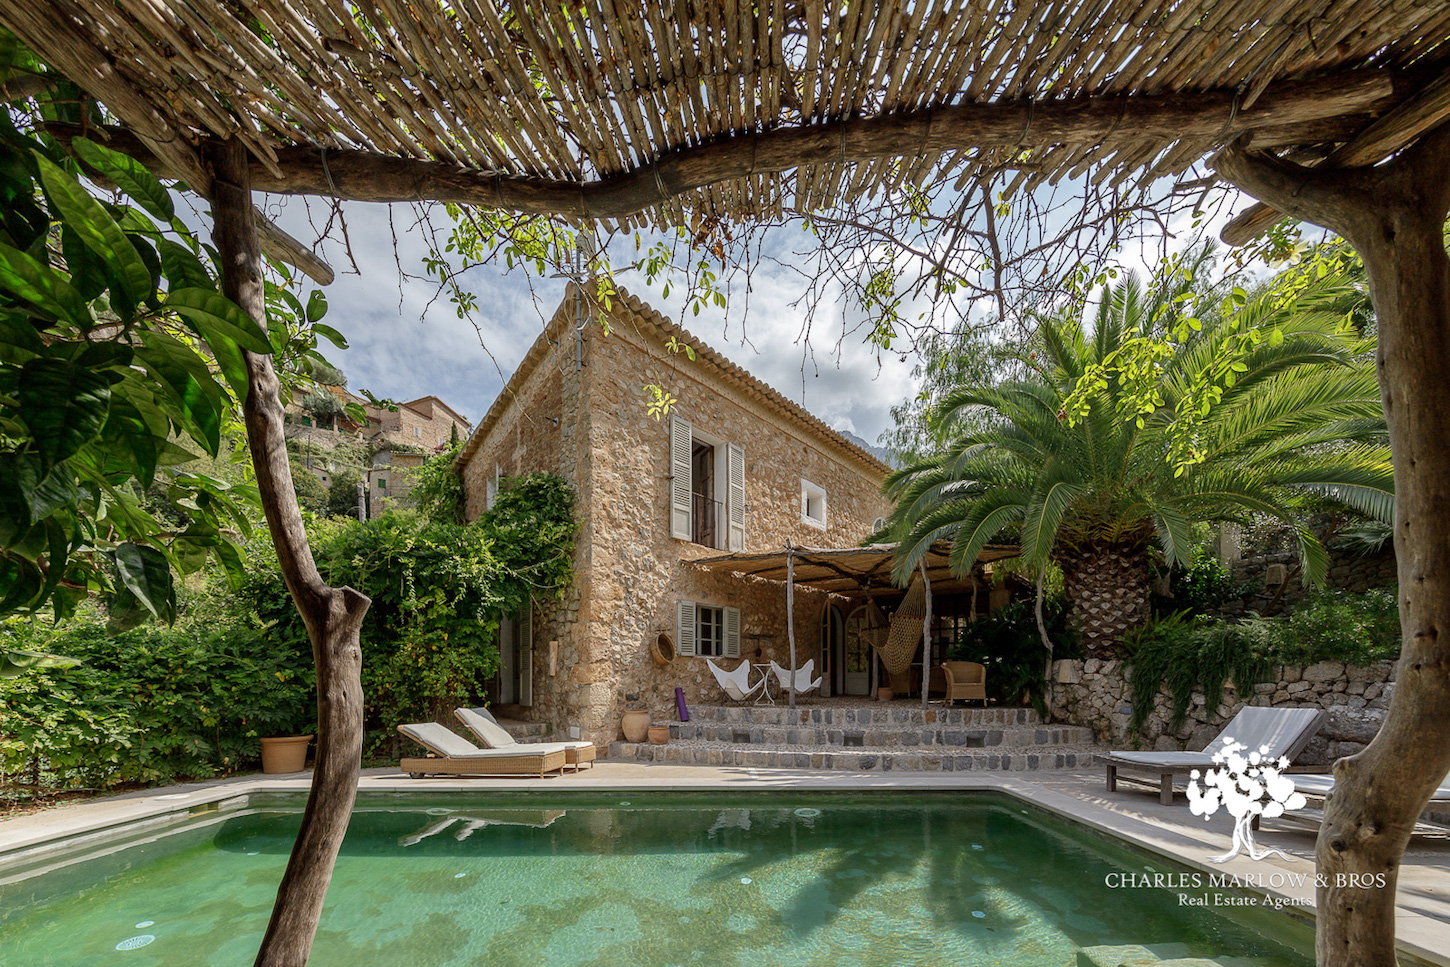 Characterful and charming town house in Deia with a pool.